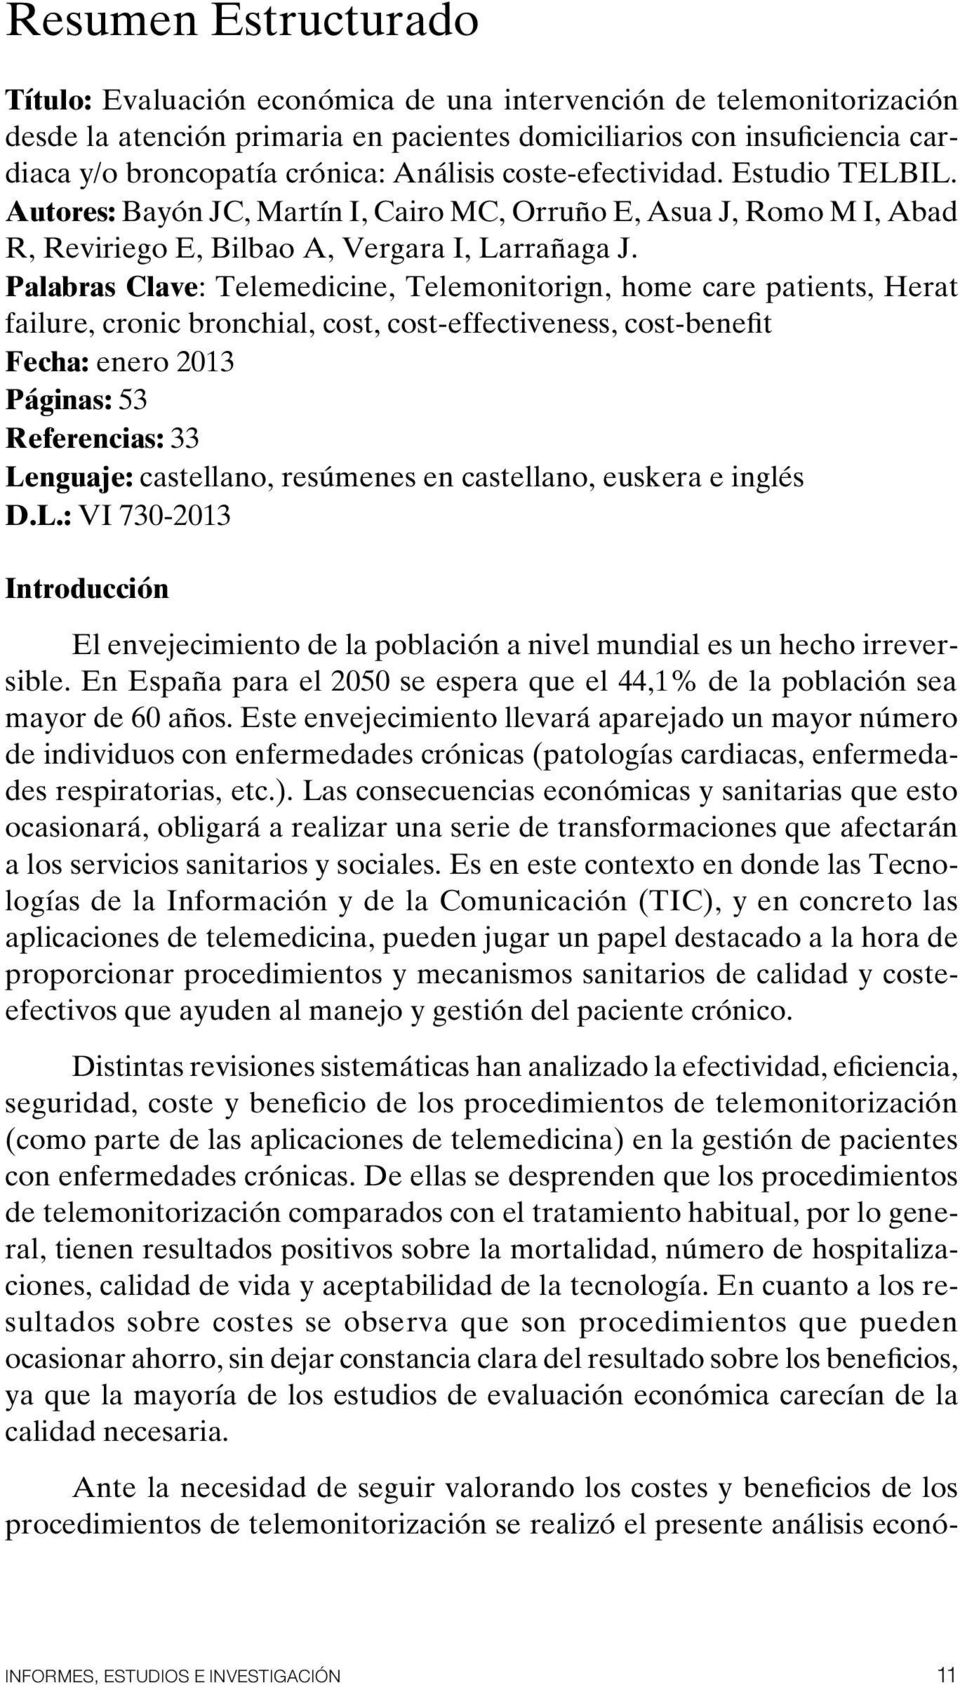 Palabras Clave: Telemedicine, Telemonitorign, home care patients, Herat failure, cronic bronchial, cost, cost-effectiveness, cost-benefit Fecha: enero 2013 Páginas: 53 Referencias: 33 Lenguaje: